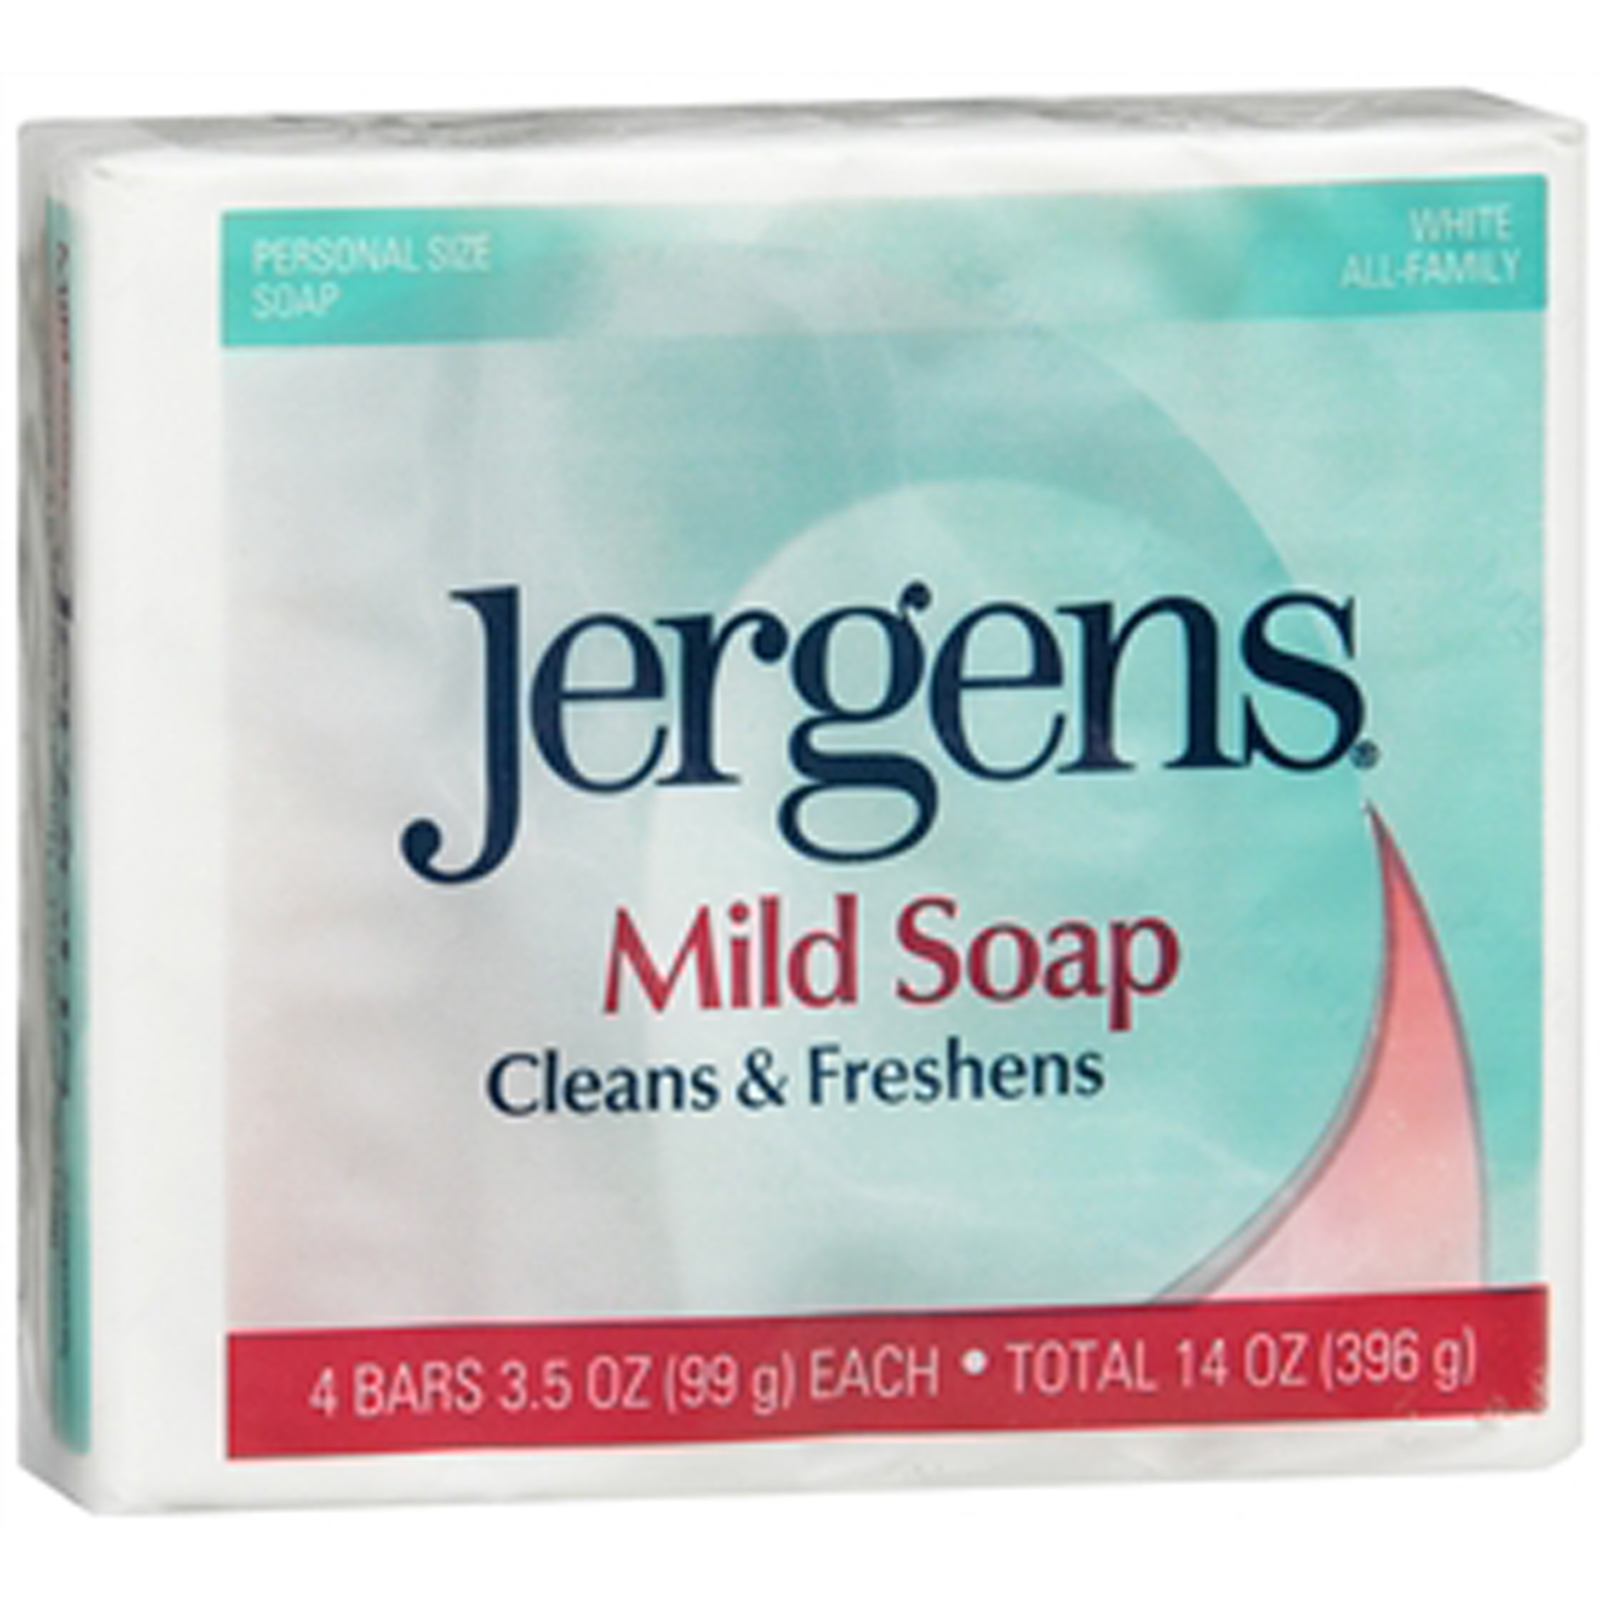 Jergens Mild Soap - 4 Bars